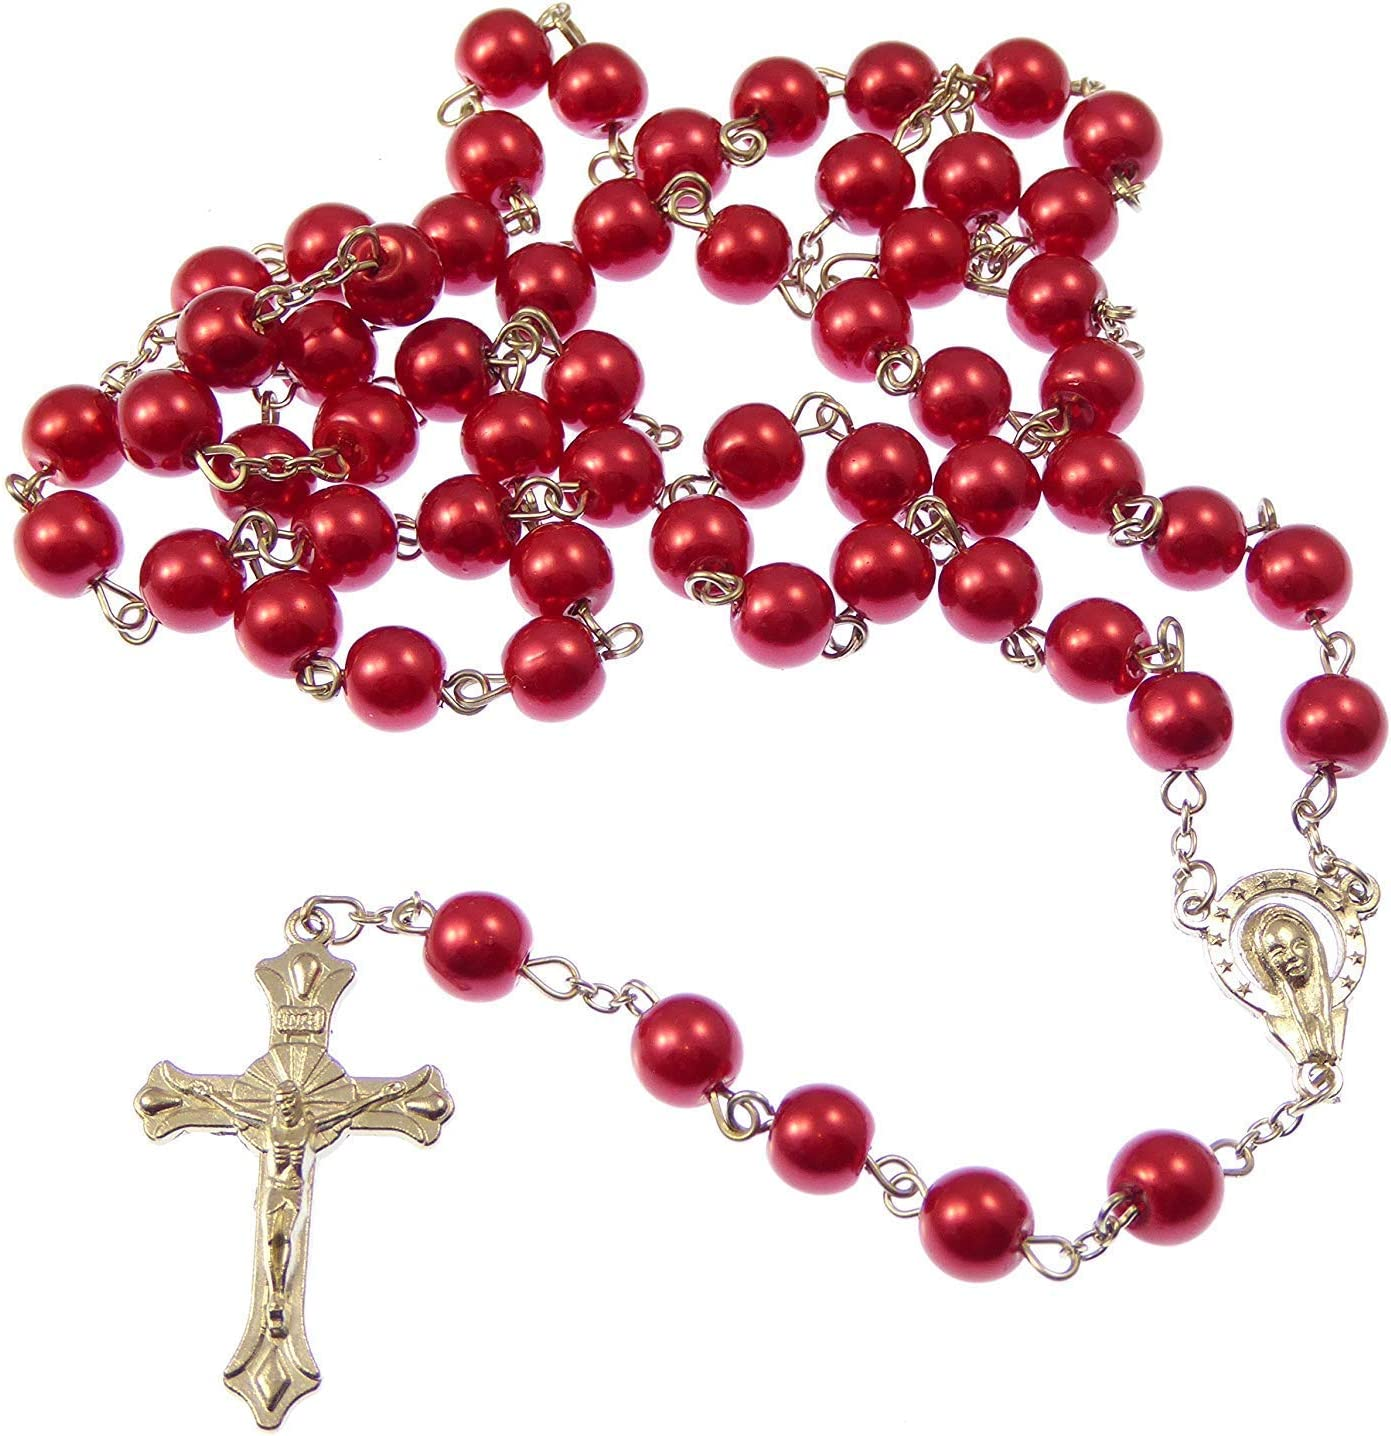 Long red metal long Catholic rosary beads with Our Lady center 12mm beads